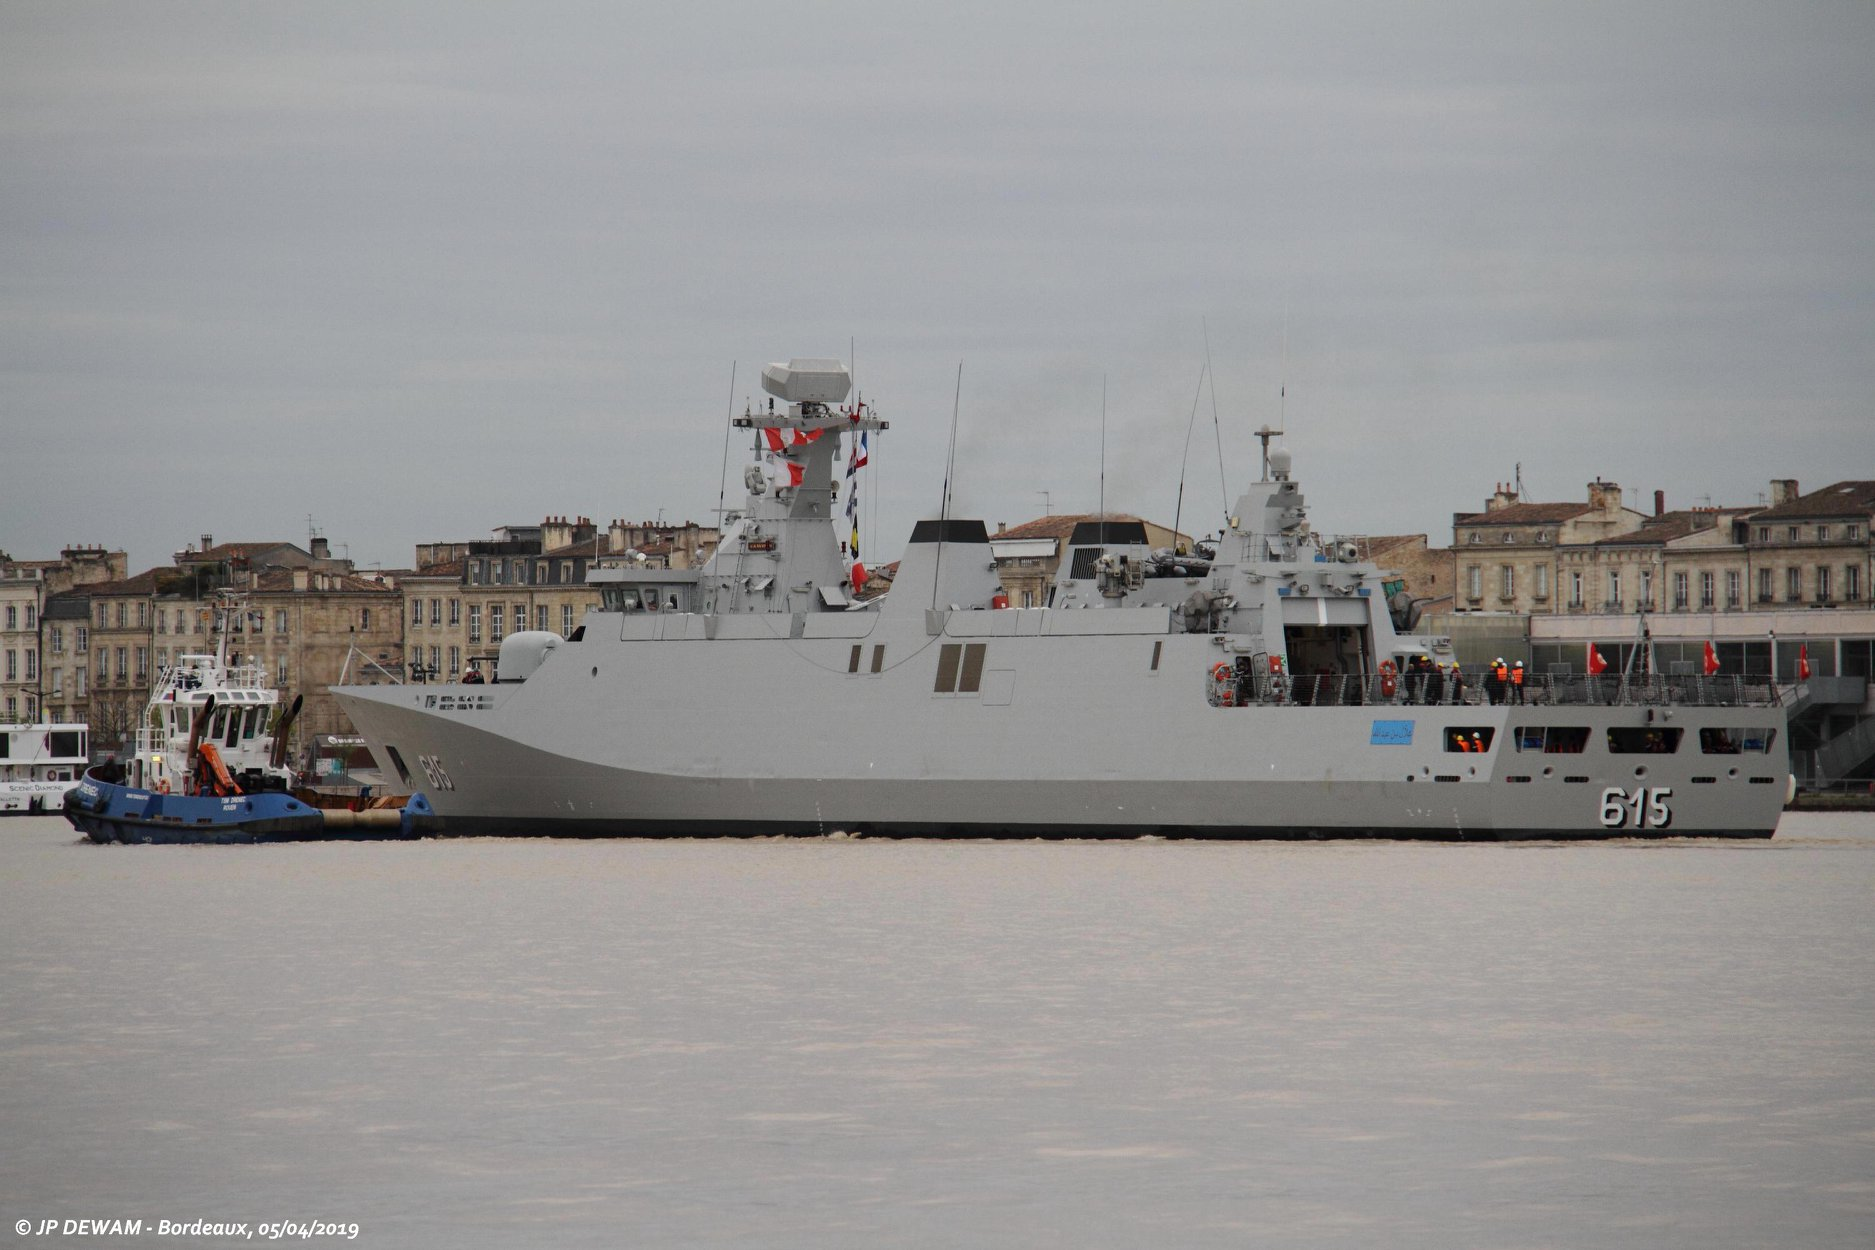 Royal Moroccan Navy Sigma class frigates / Frégates marocaines multimissions Sigma - Page 25 46635903645_bcac3efd41_o